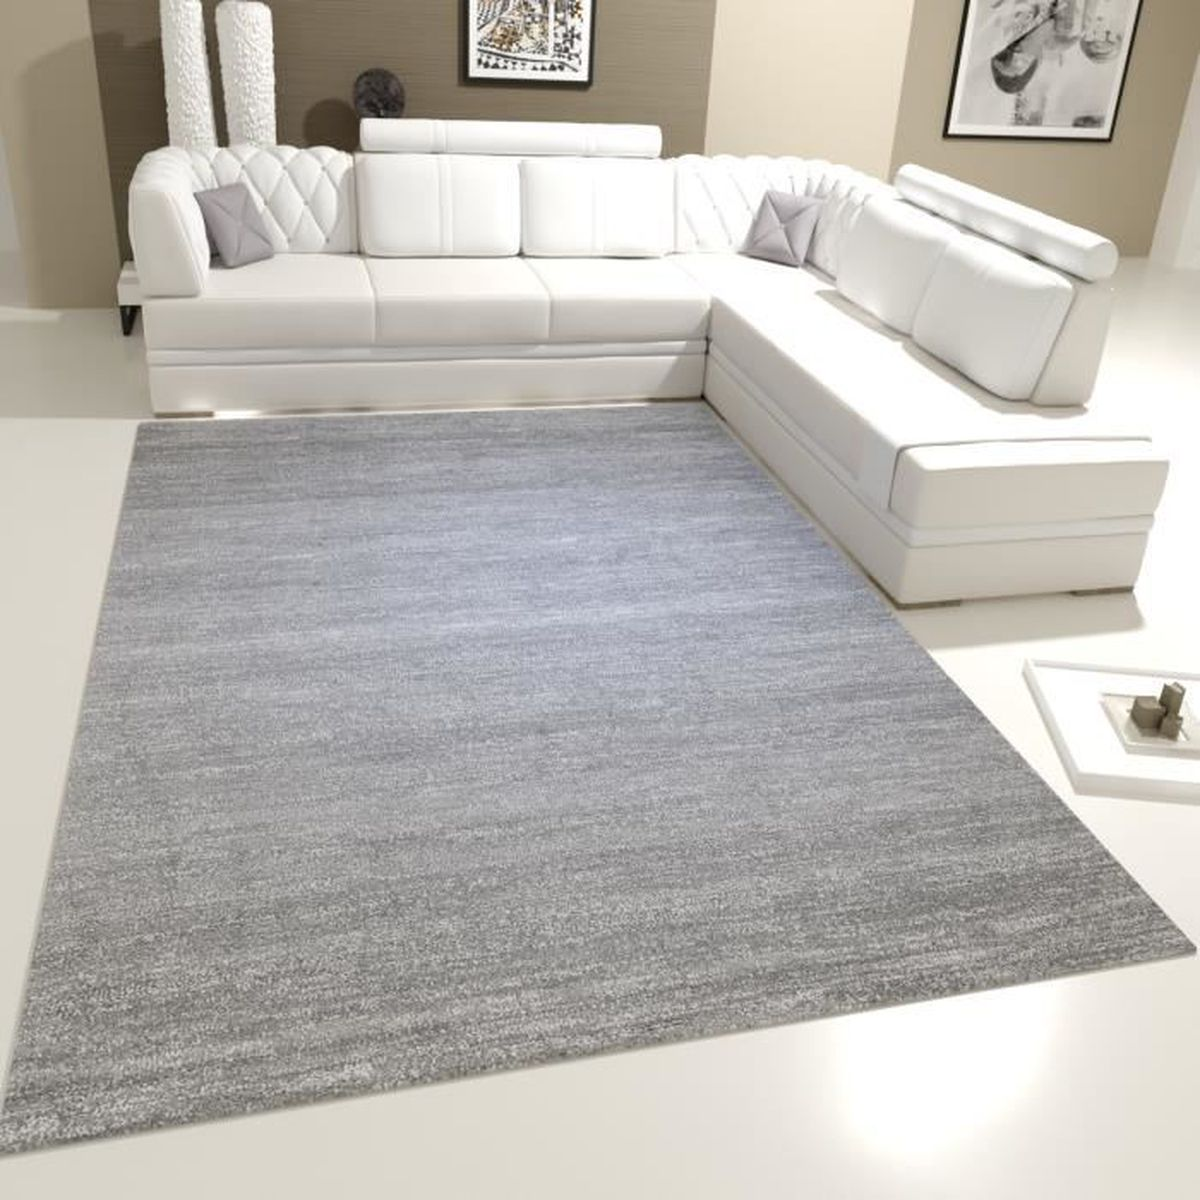 tapis de salon gris blanc achat vente tapis de salon. Black Bedroom Furniture Sets. Home Design Ideas